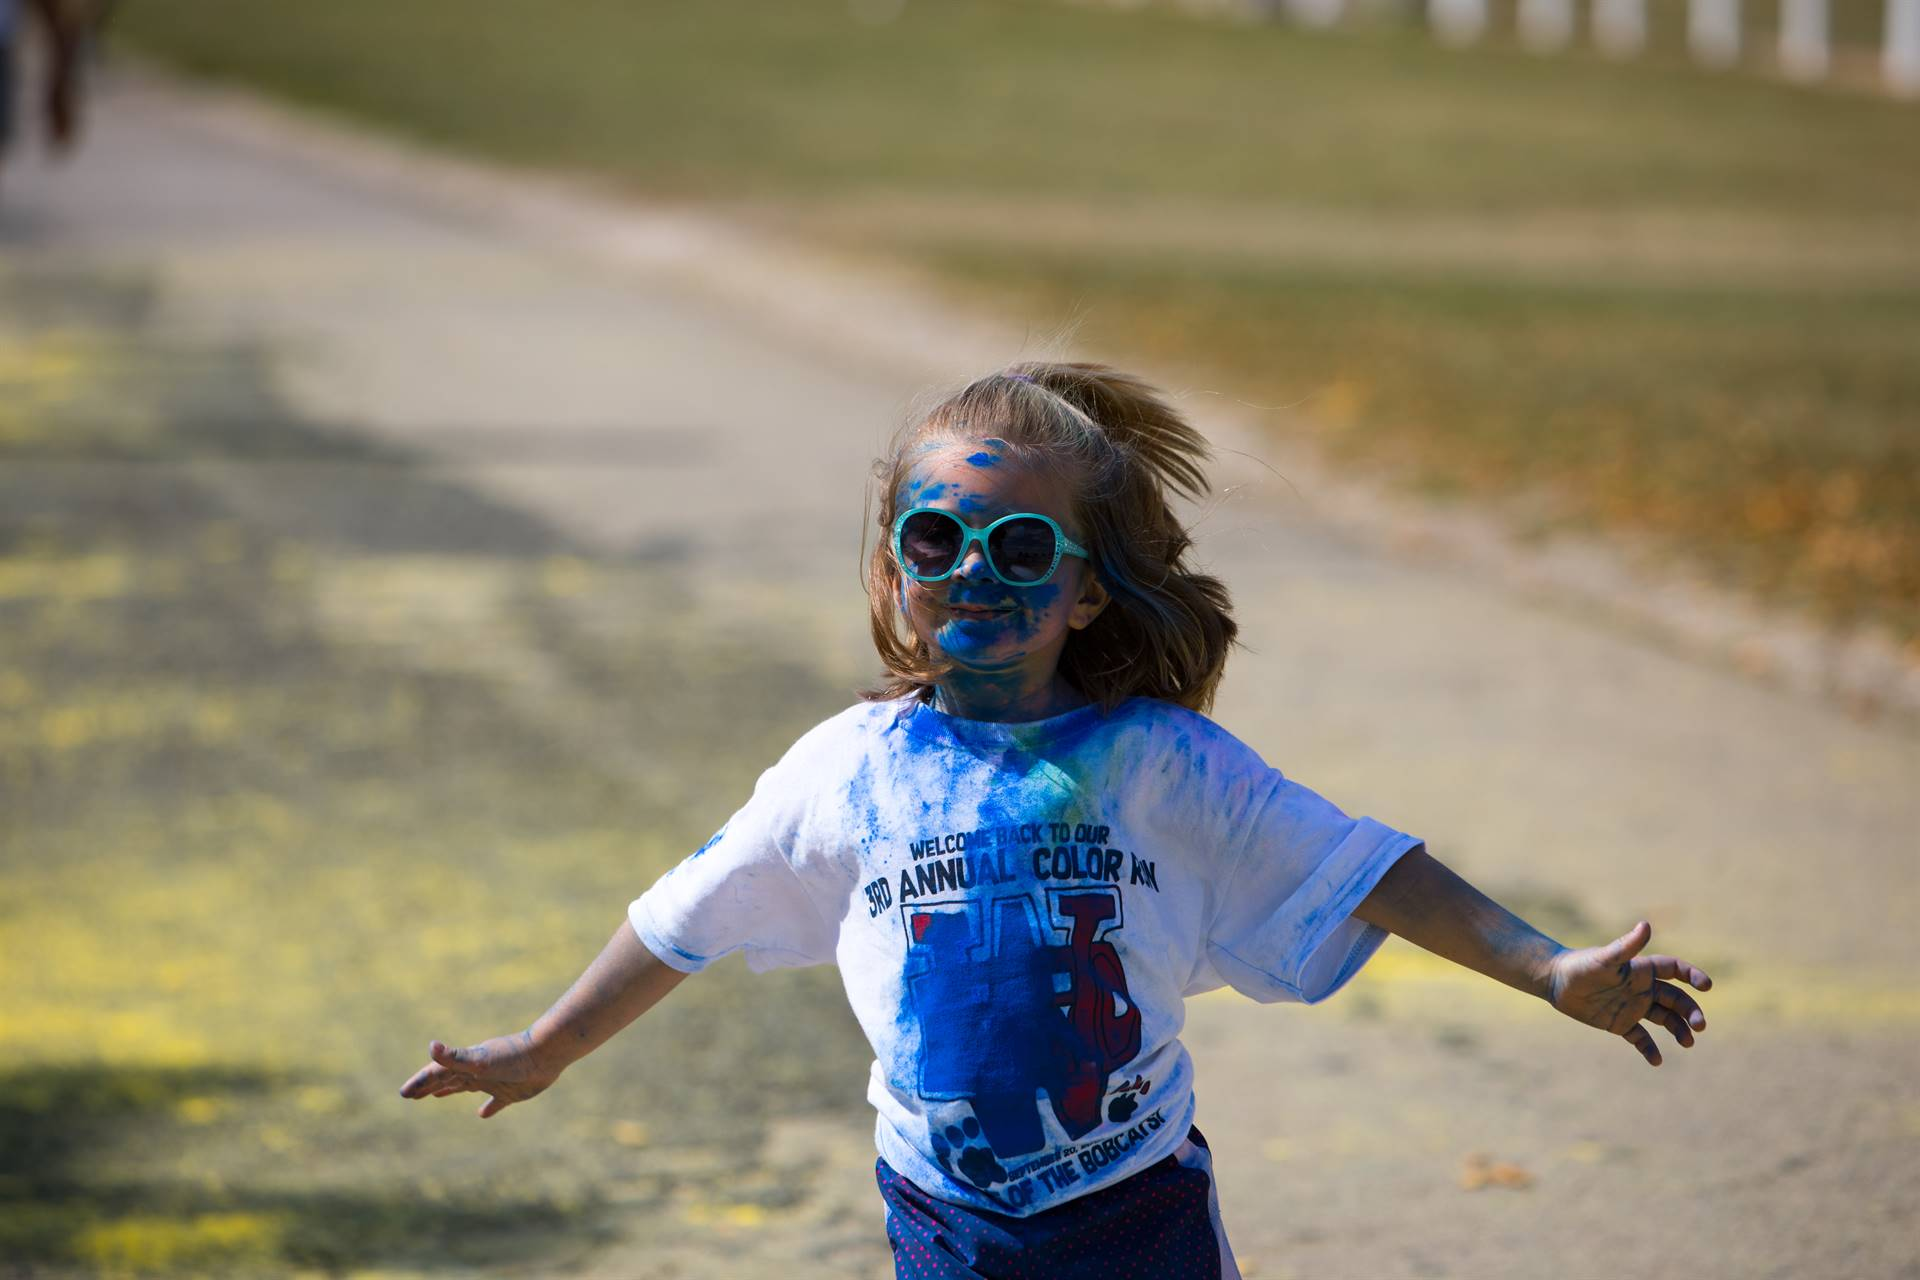 Girl 10 at color run with a splash of color